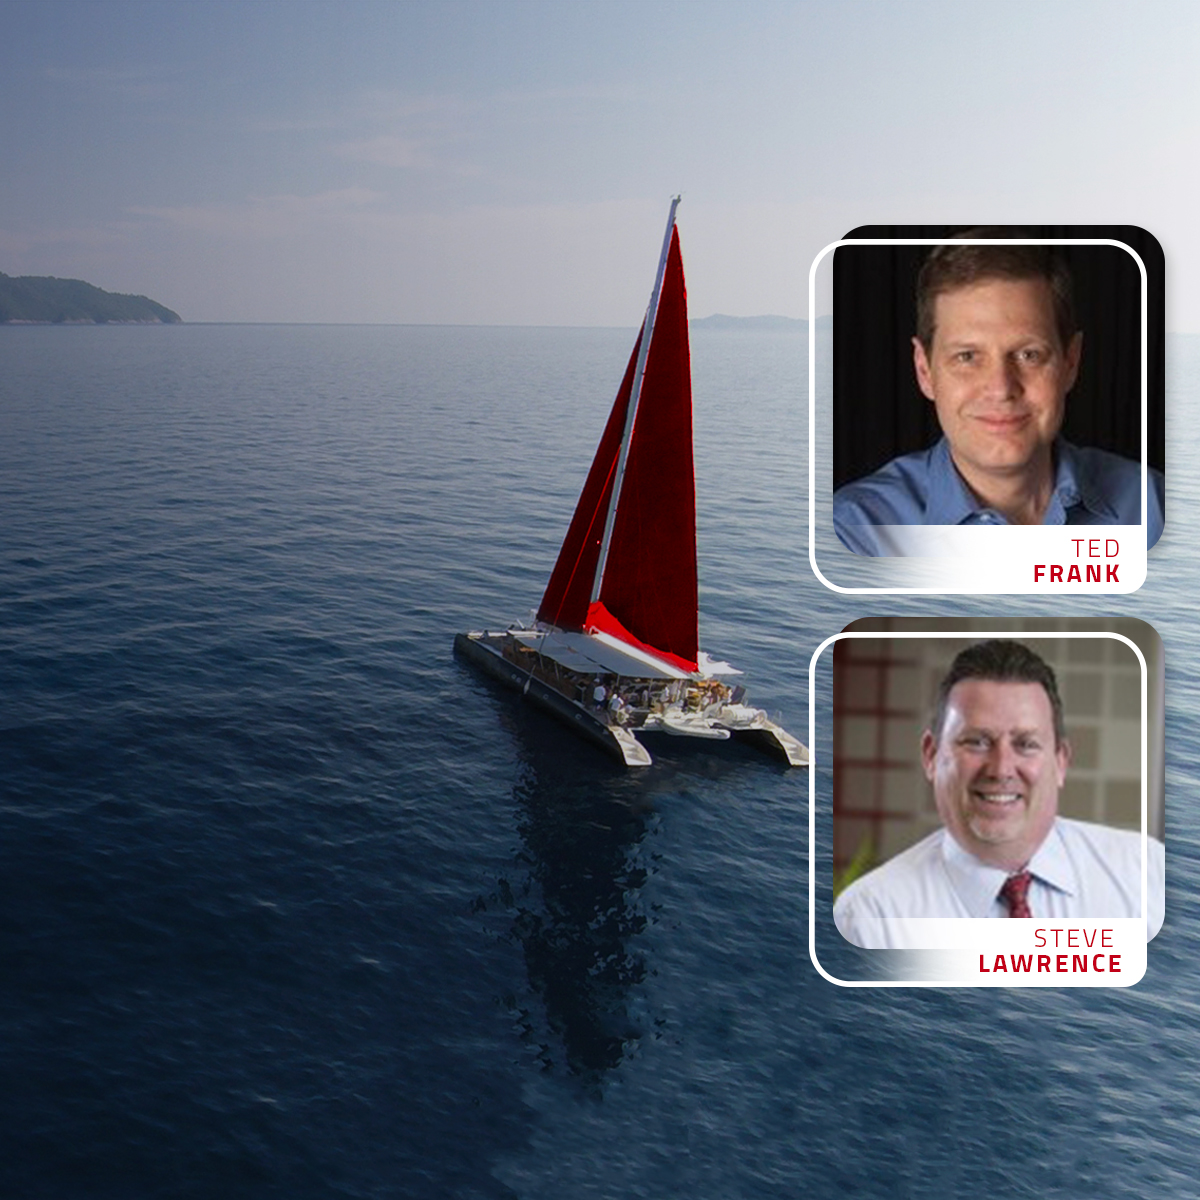 Red Boat sailing with headshots of podcast guests